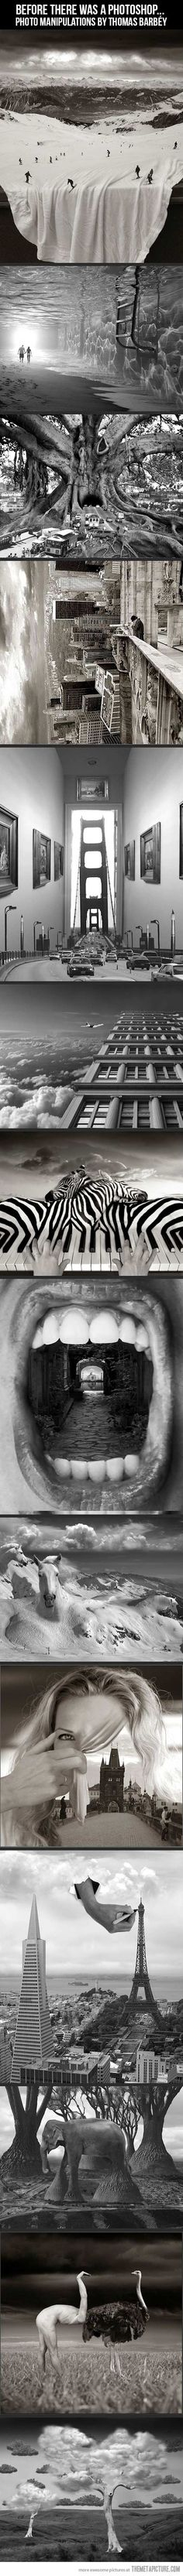 funny-cool-photo-manipulations-Thomas-Barbey